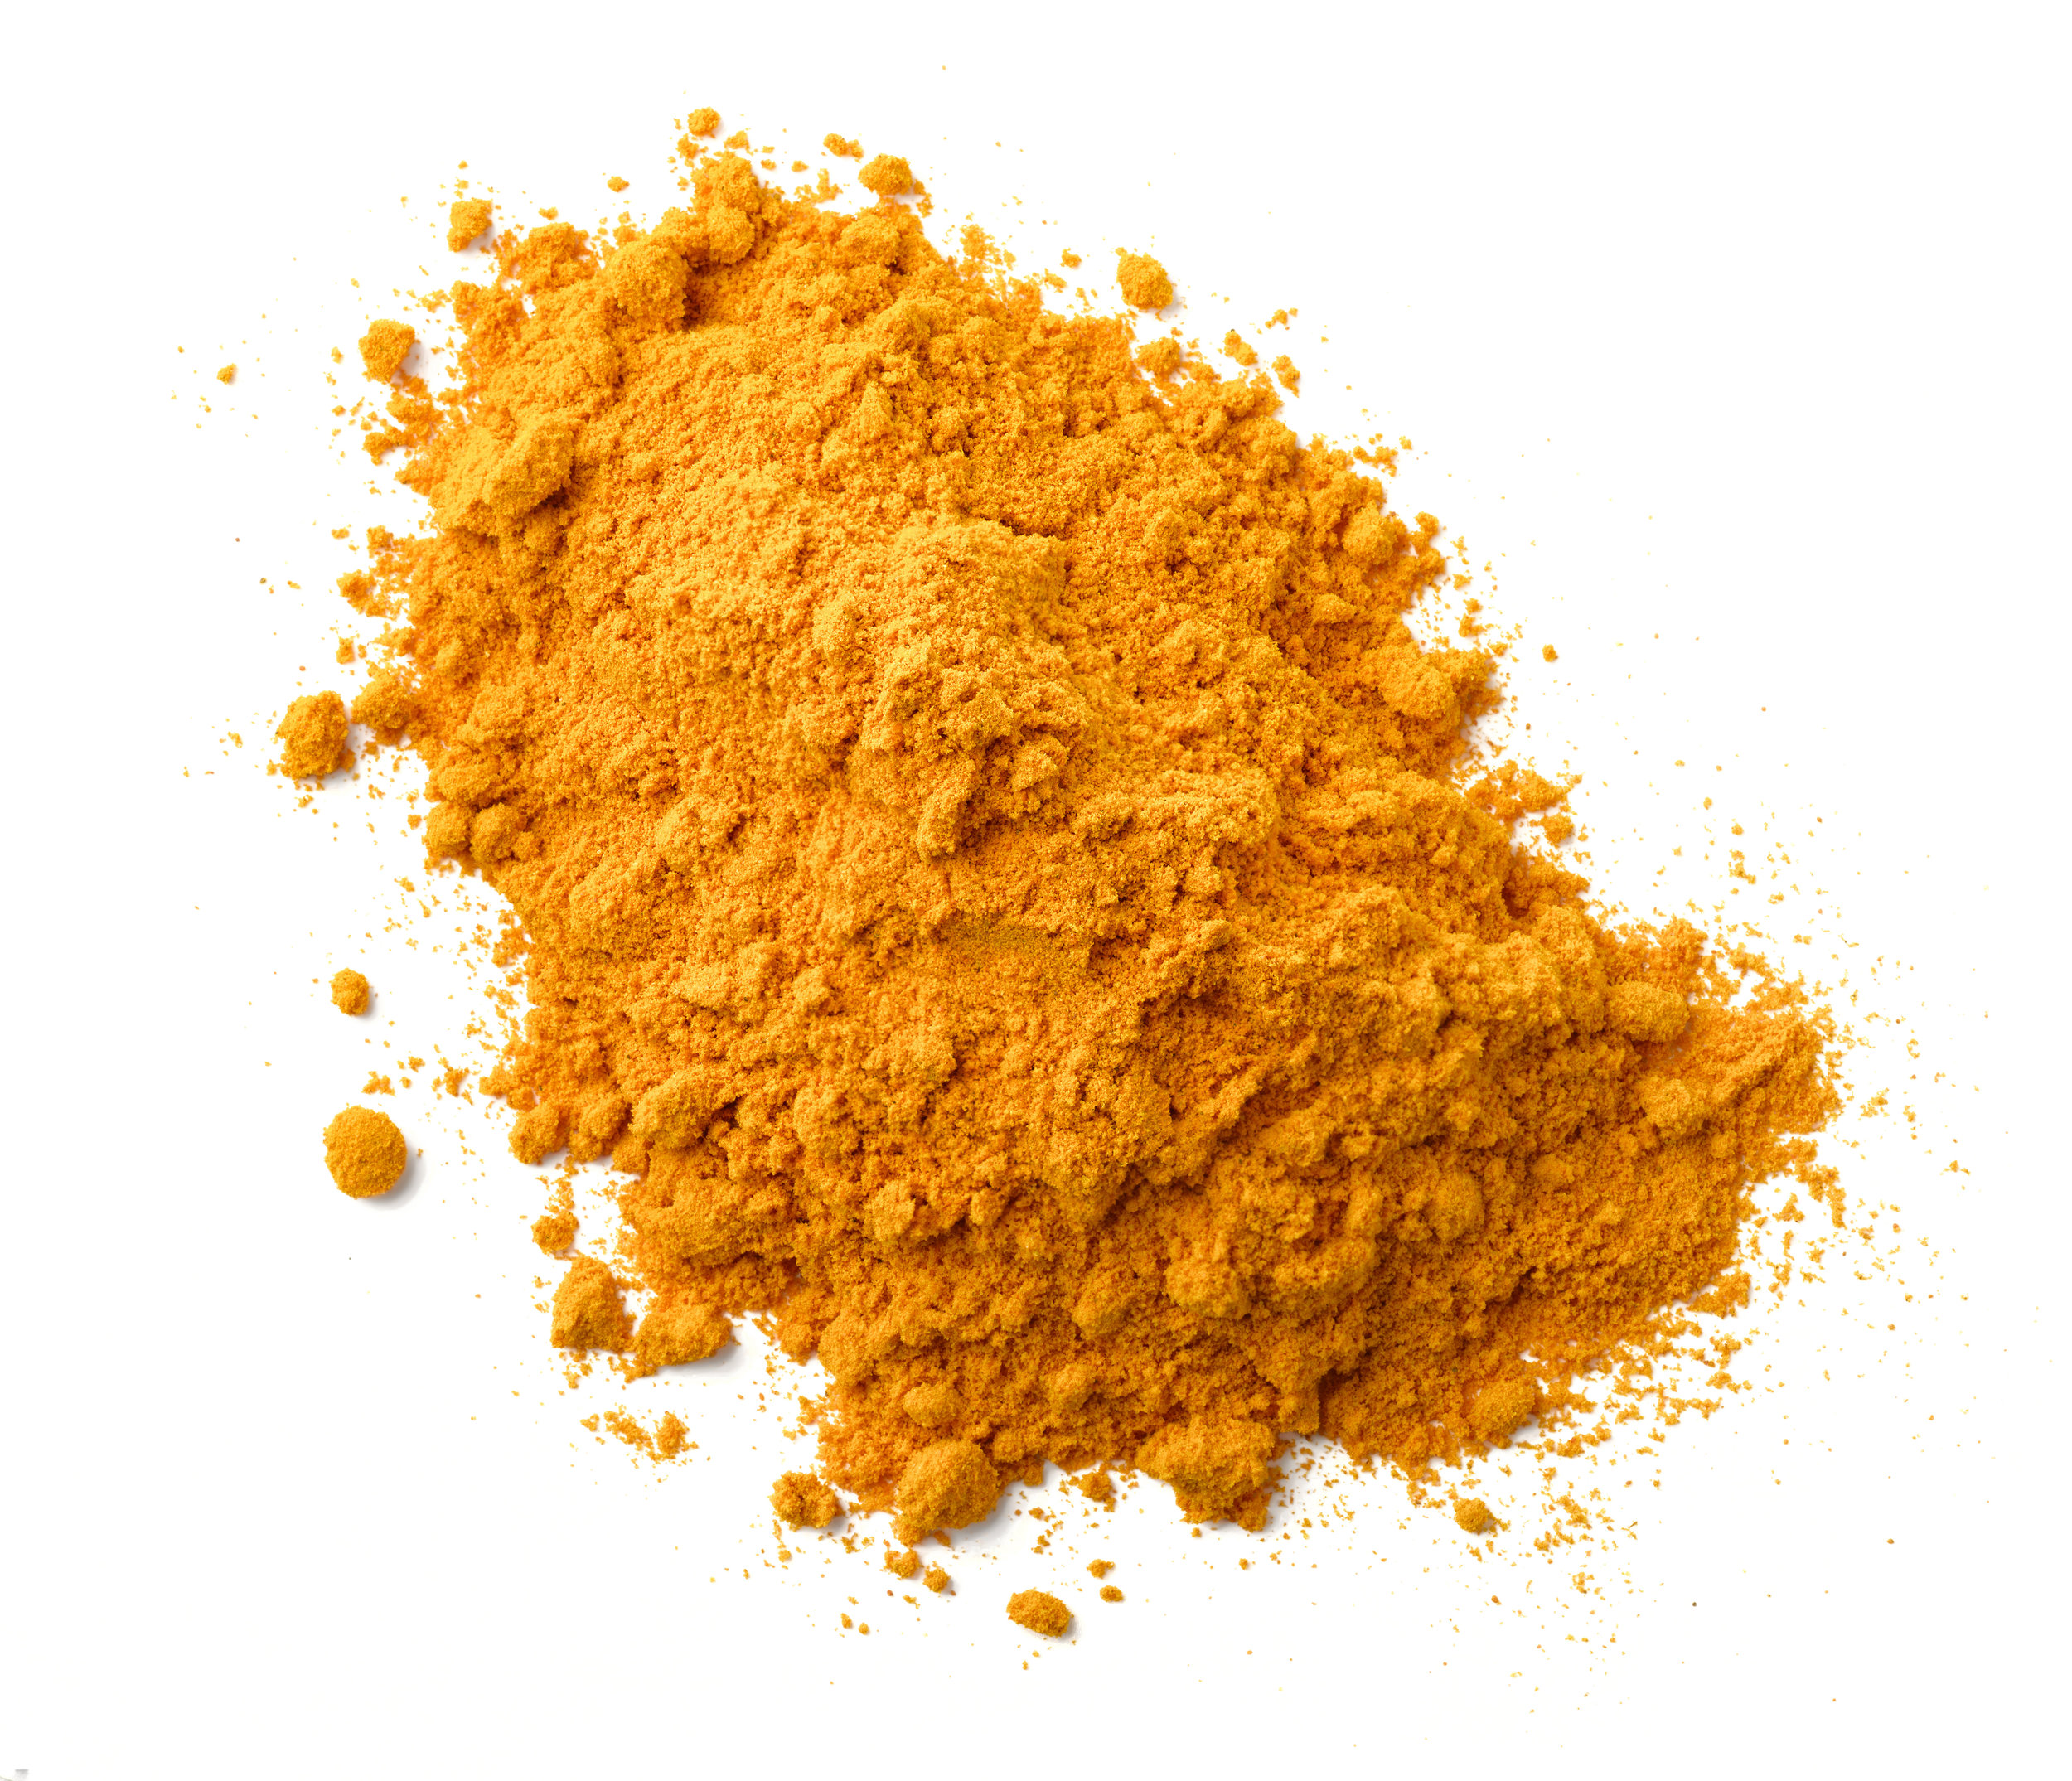 - Turmeric can prevent heart disease, Alzheimer's and cancer. It's a potent anti-inflammatory and antioxidant and may also help improve symptoms of depression and arthritis. It also aids in weight loss and is said to reduce the inflammation associated with being overweight and with obesity.